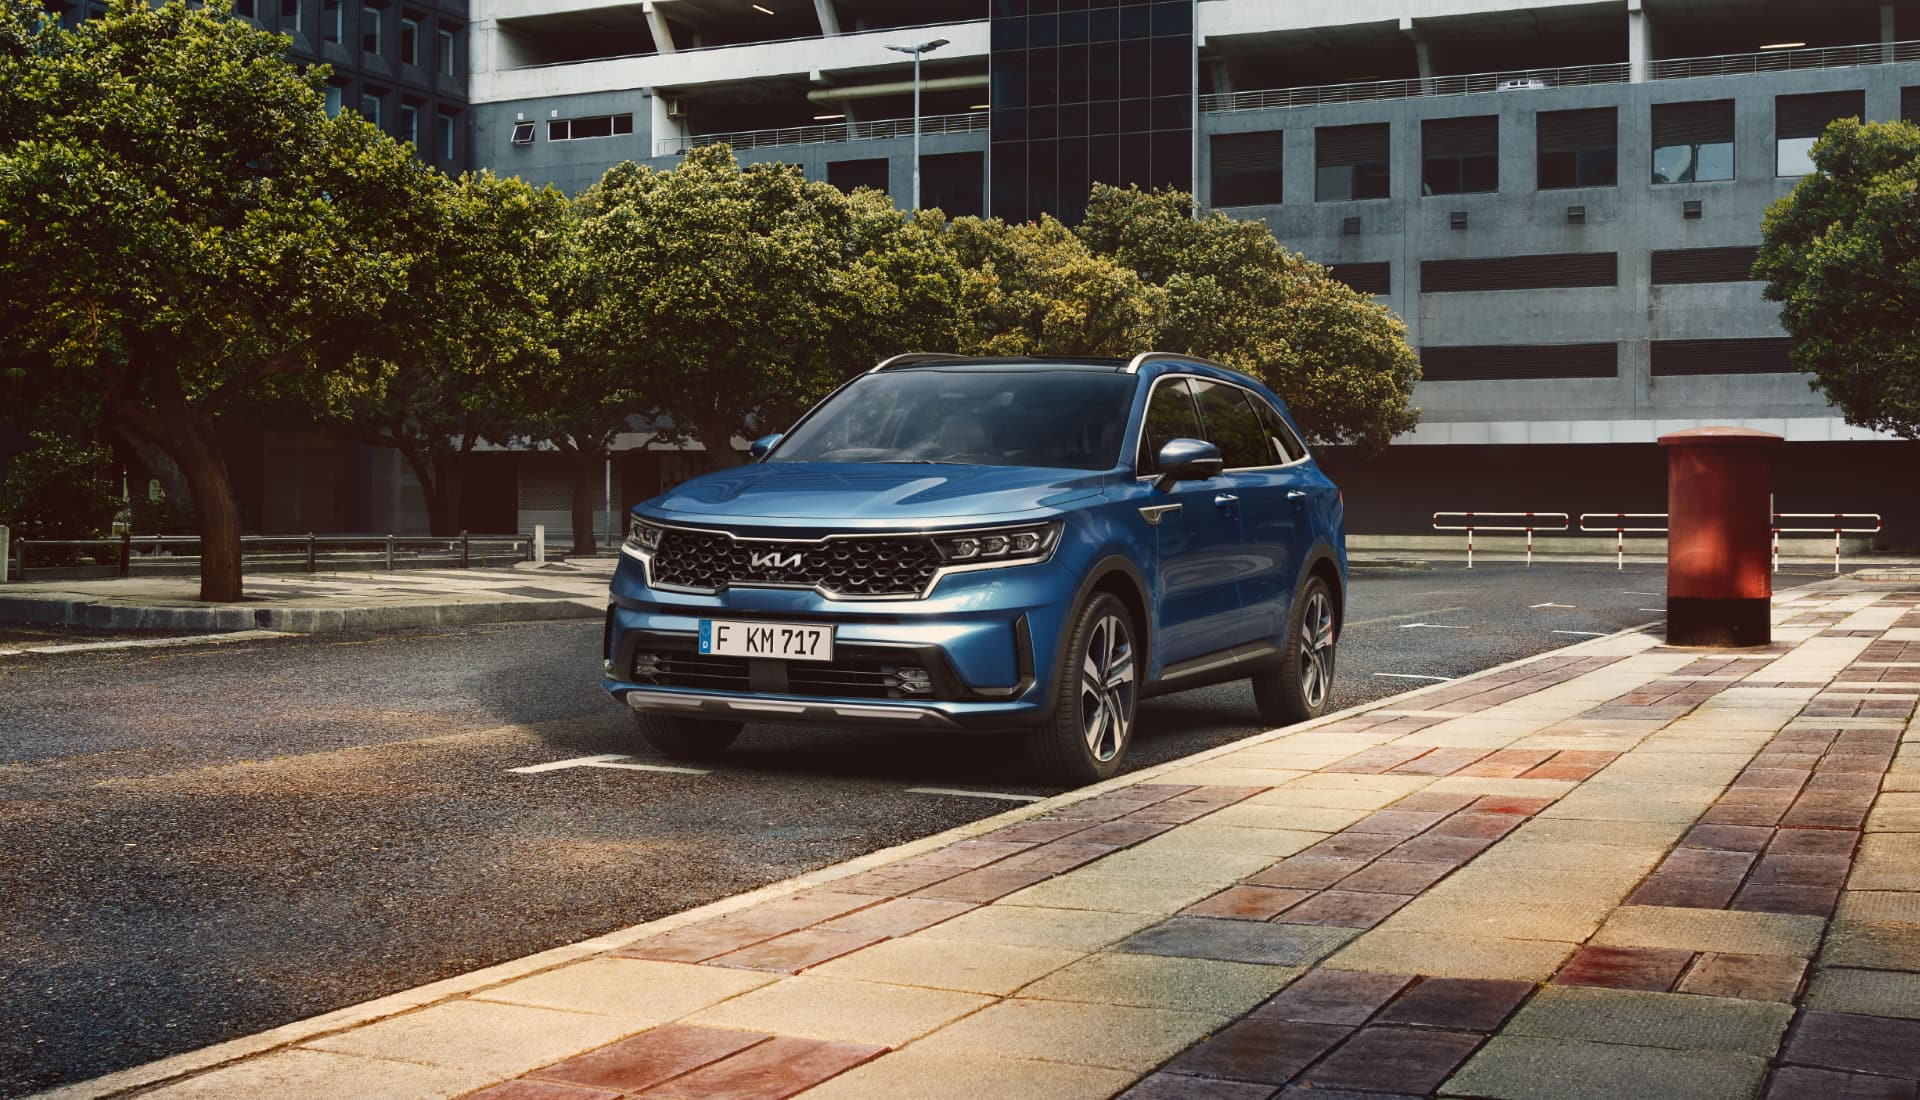 The All-New Kia Sorento Plug-in Hybrid